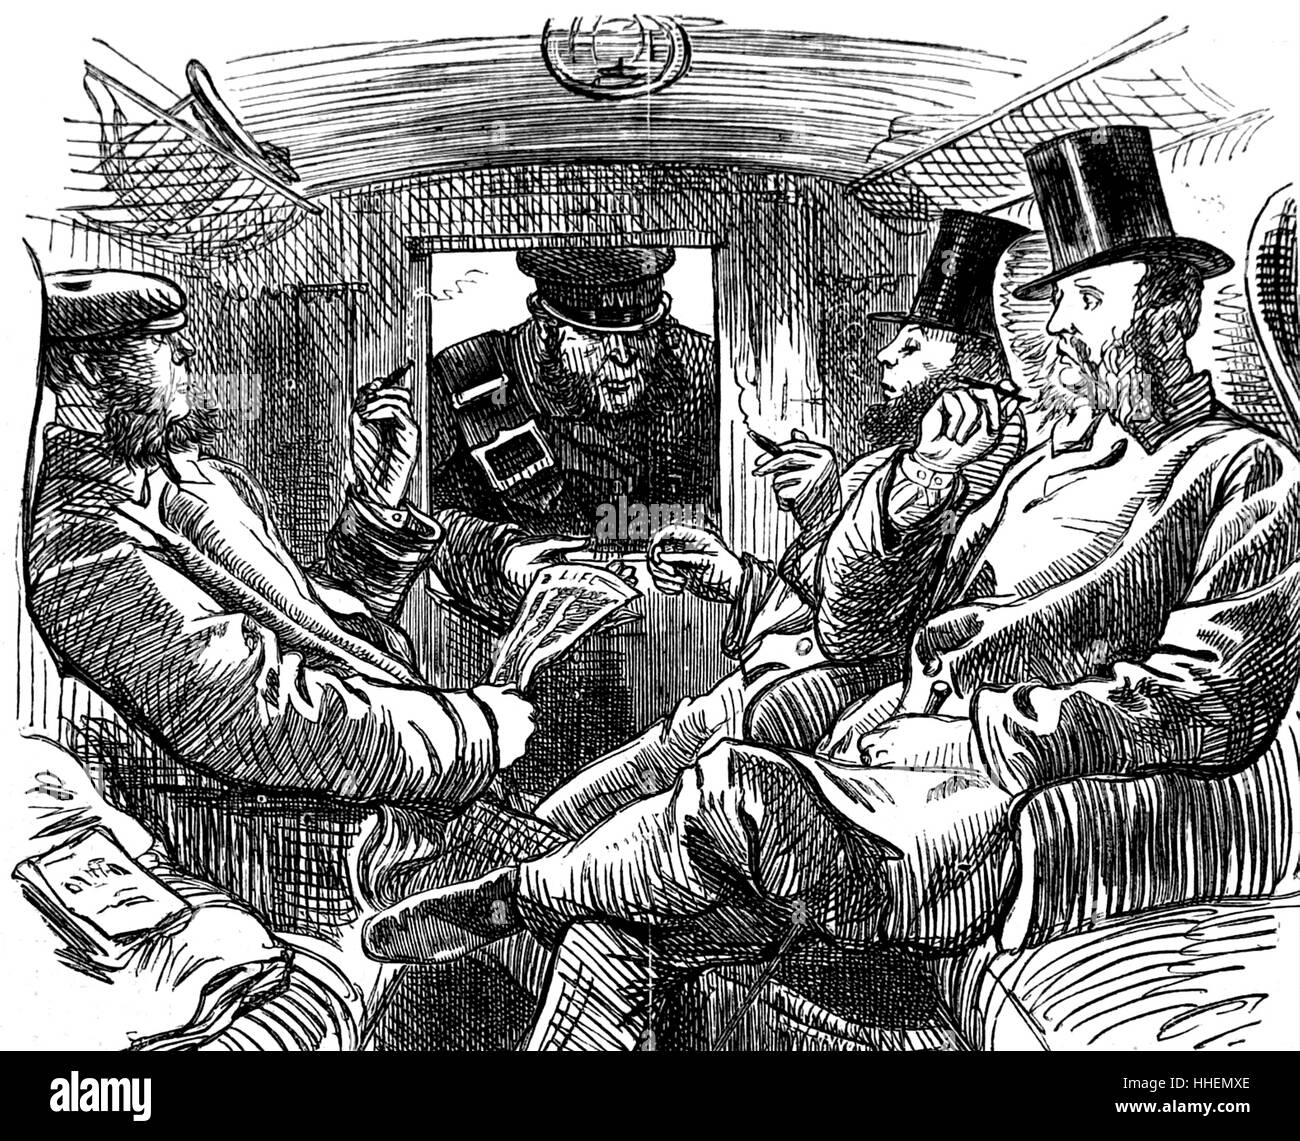 https://c8.alamy.com/comp/HHEMXE/illustration-depicting-a-conductor-collecting-tickets-from-first-class-HHEMXE.jpg